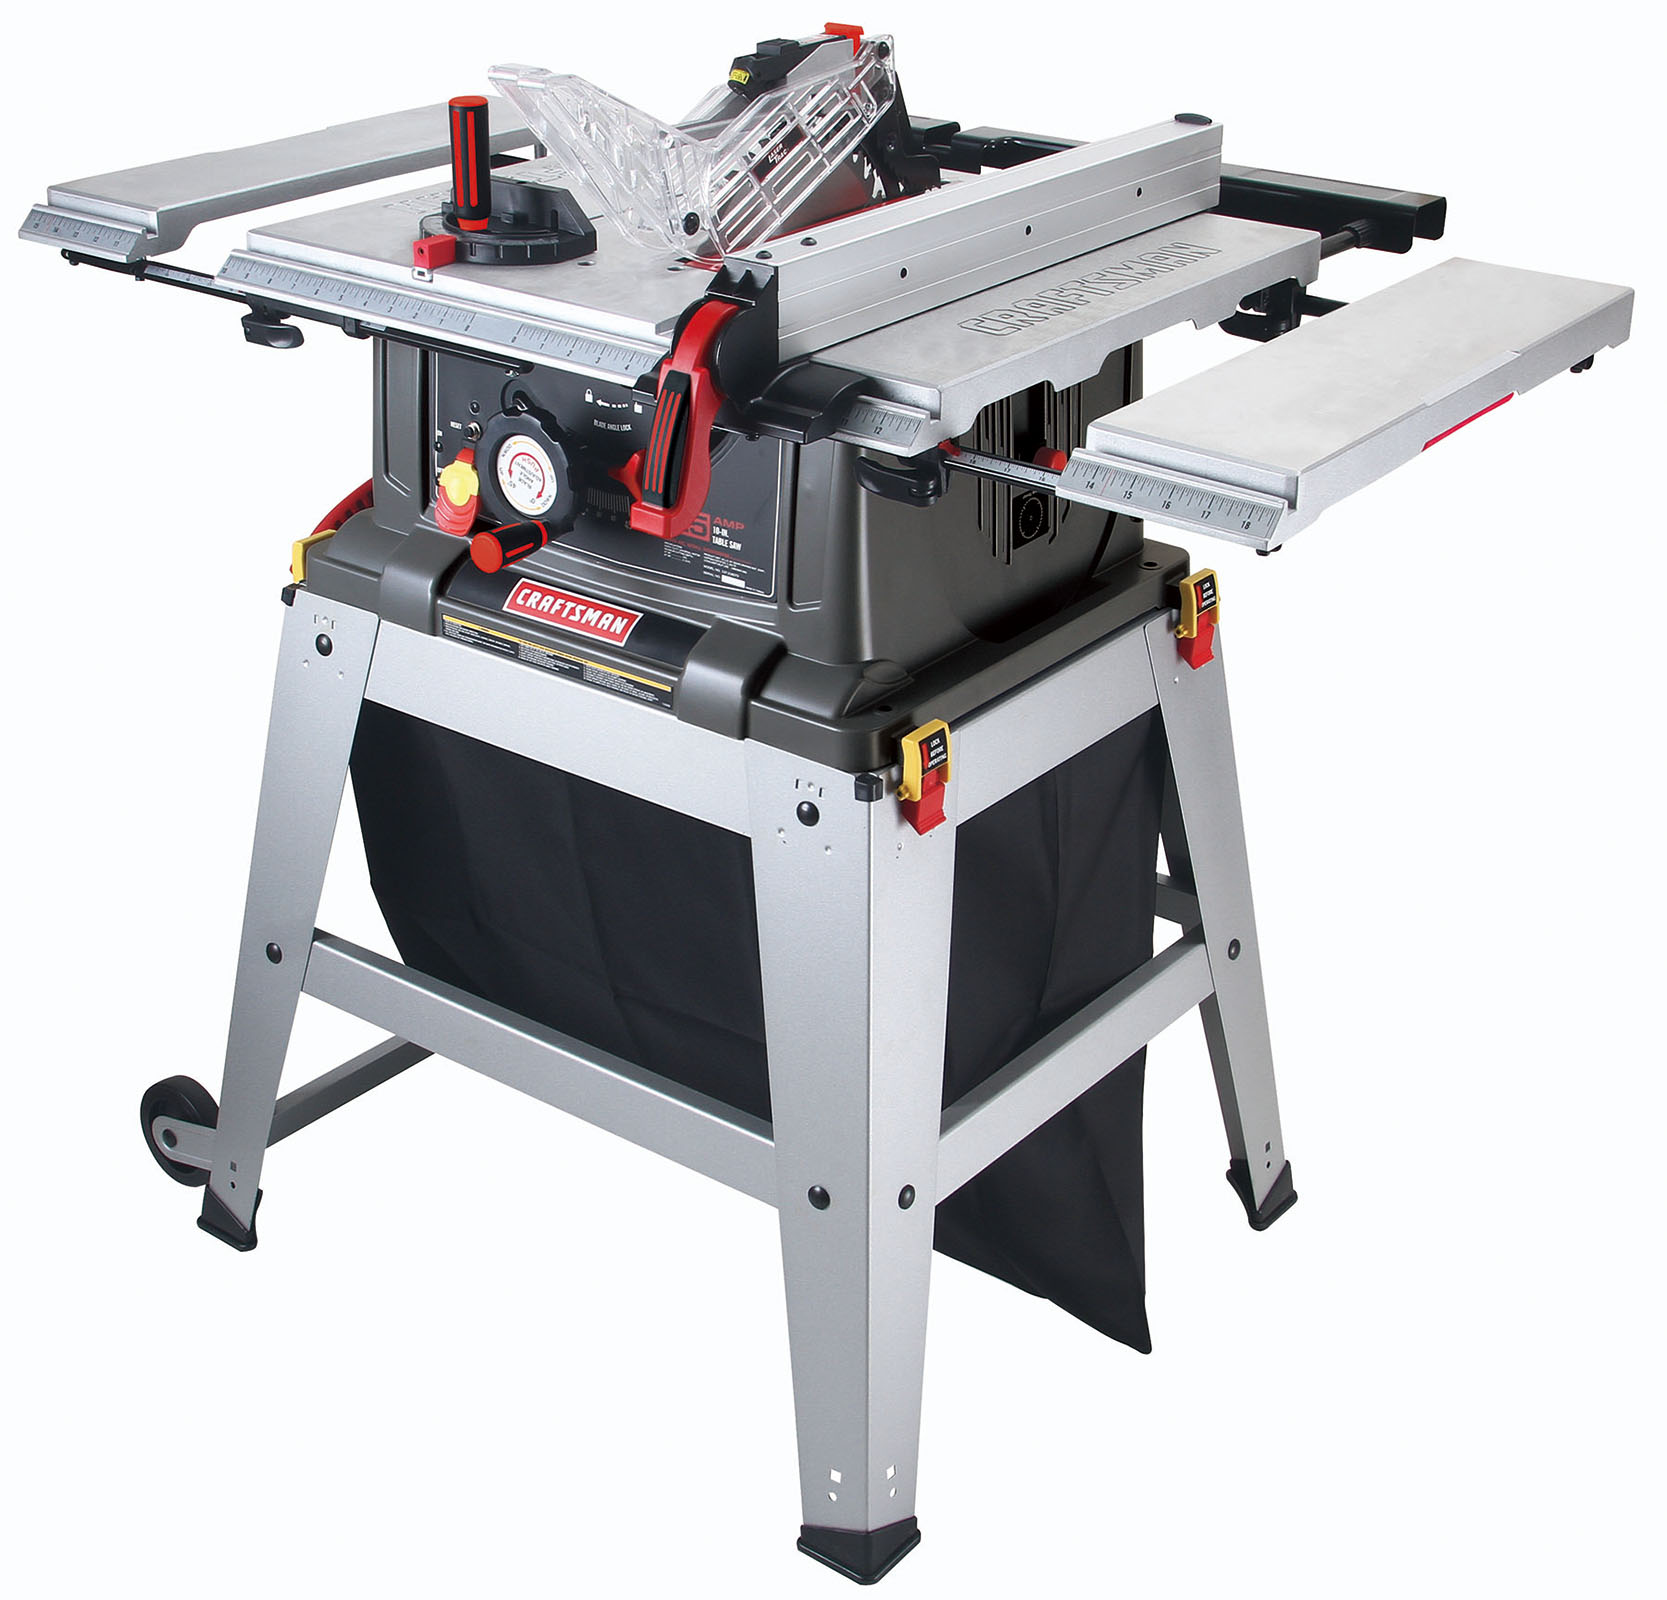 hight resolution of prod 1565359712 wid 200 hei 250 craftsman table saw parts model 137218073